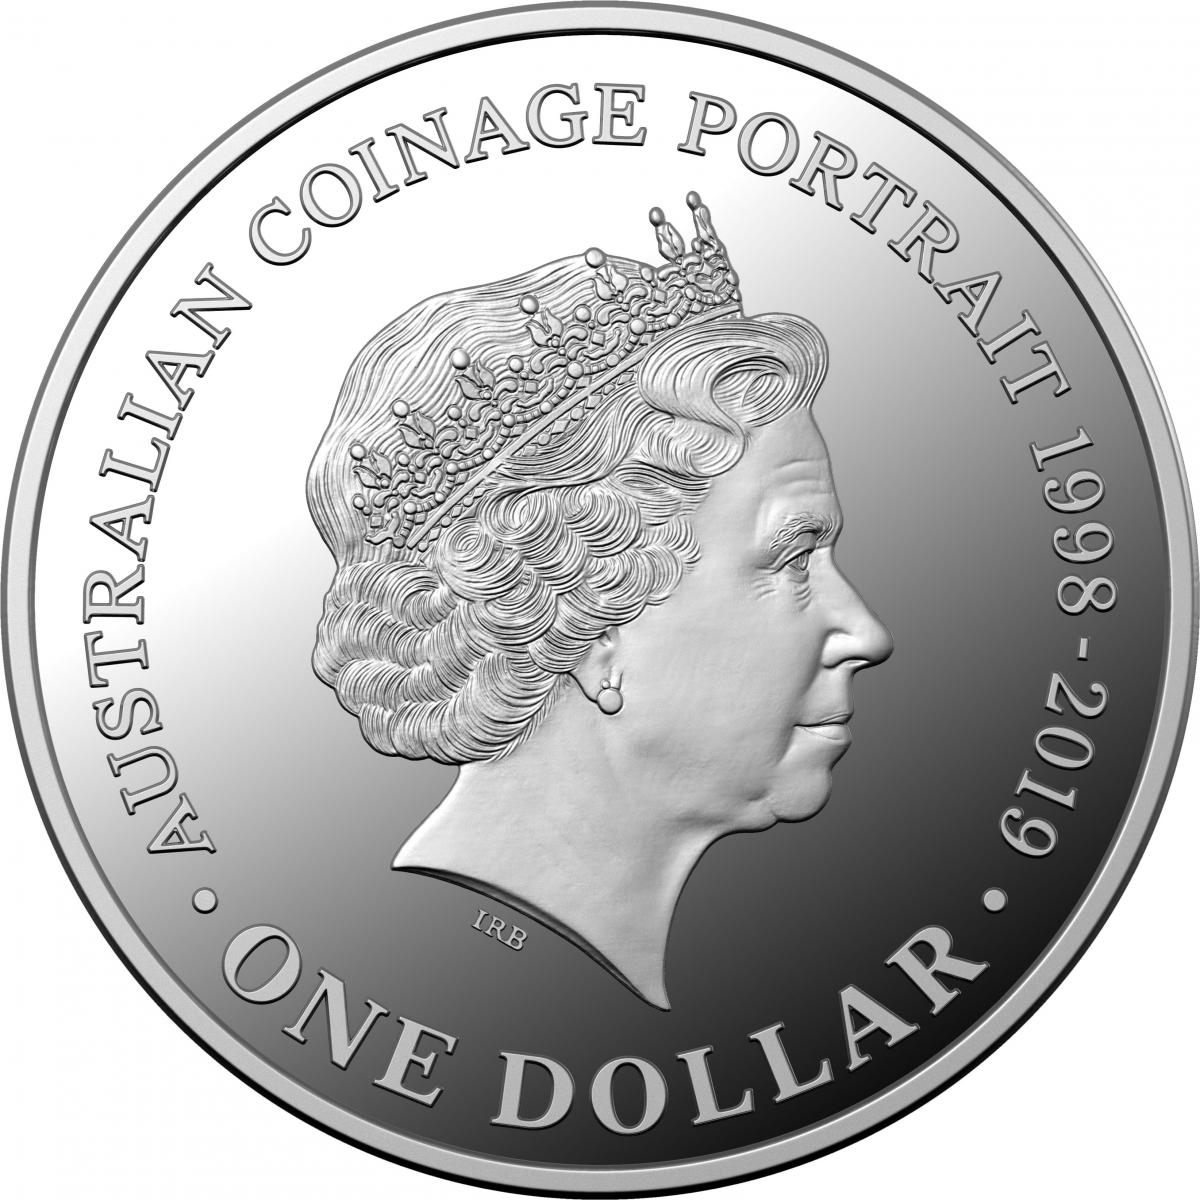 Governor-General unveils first Australian coins featuring new